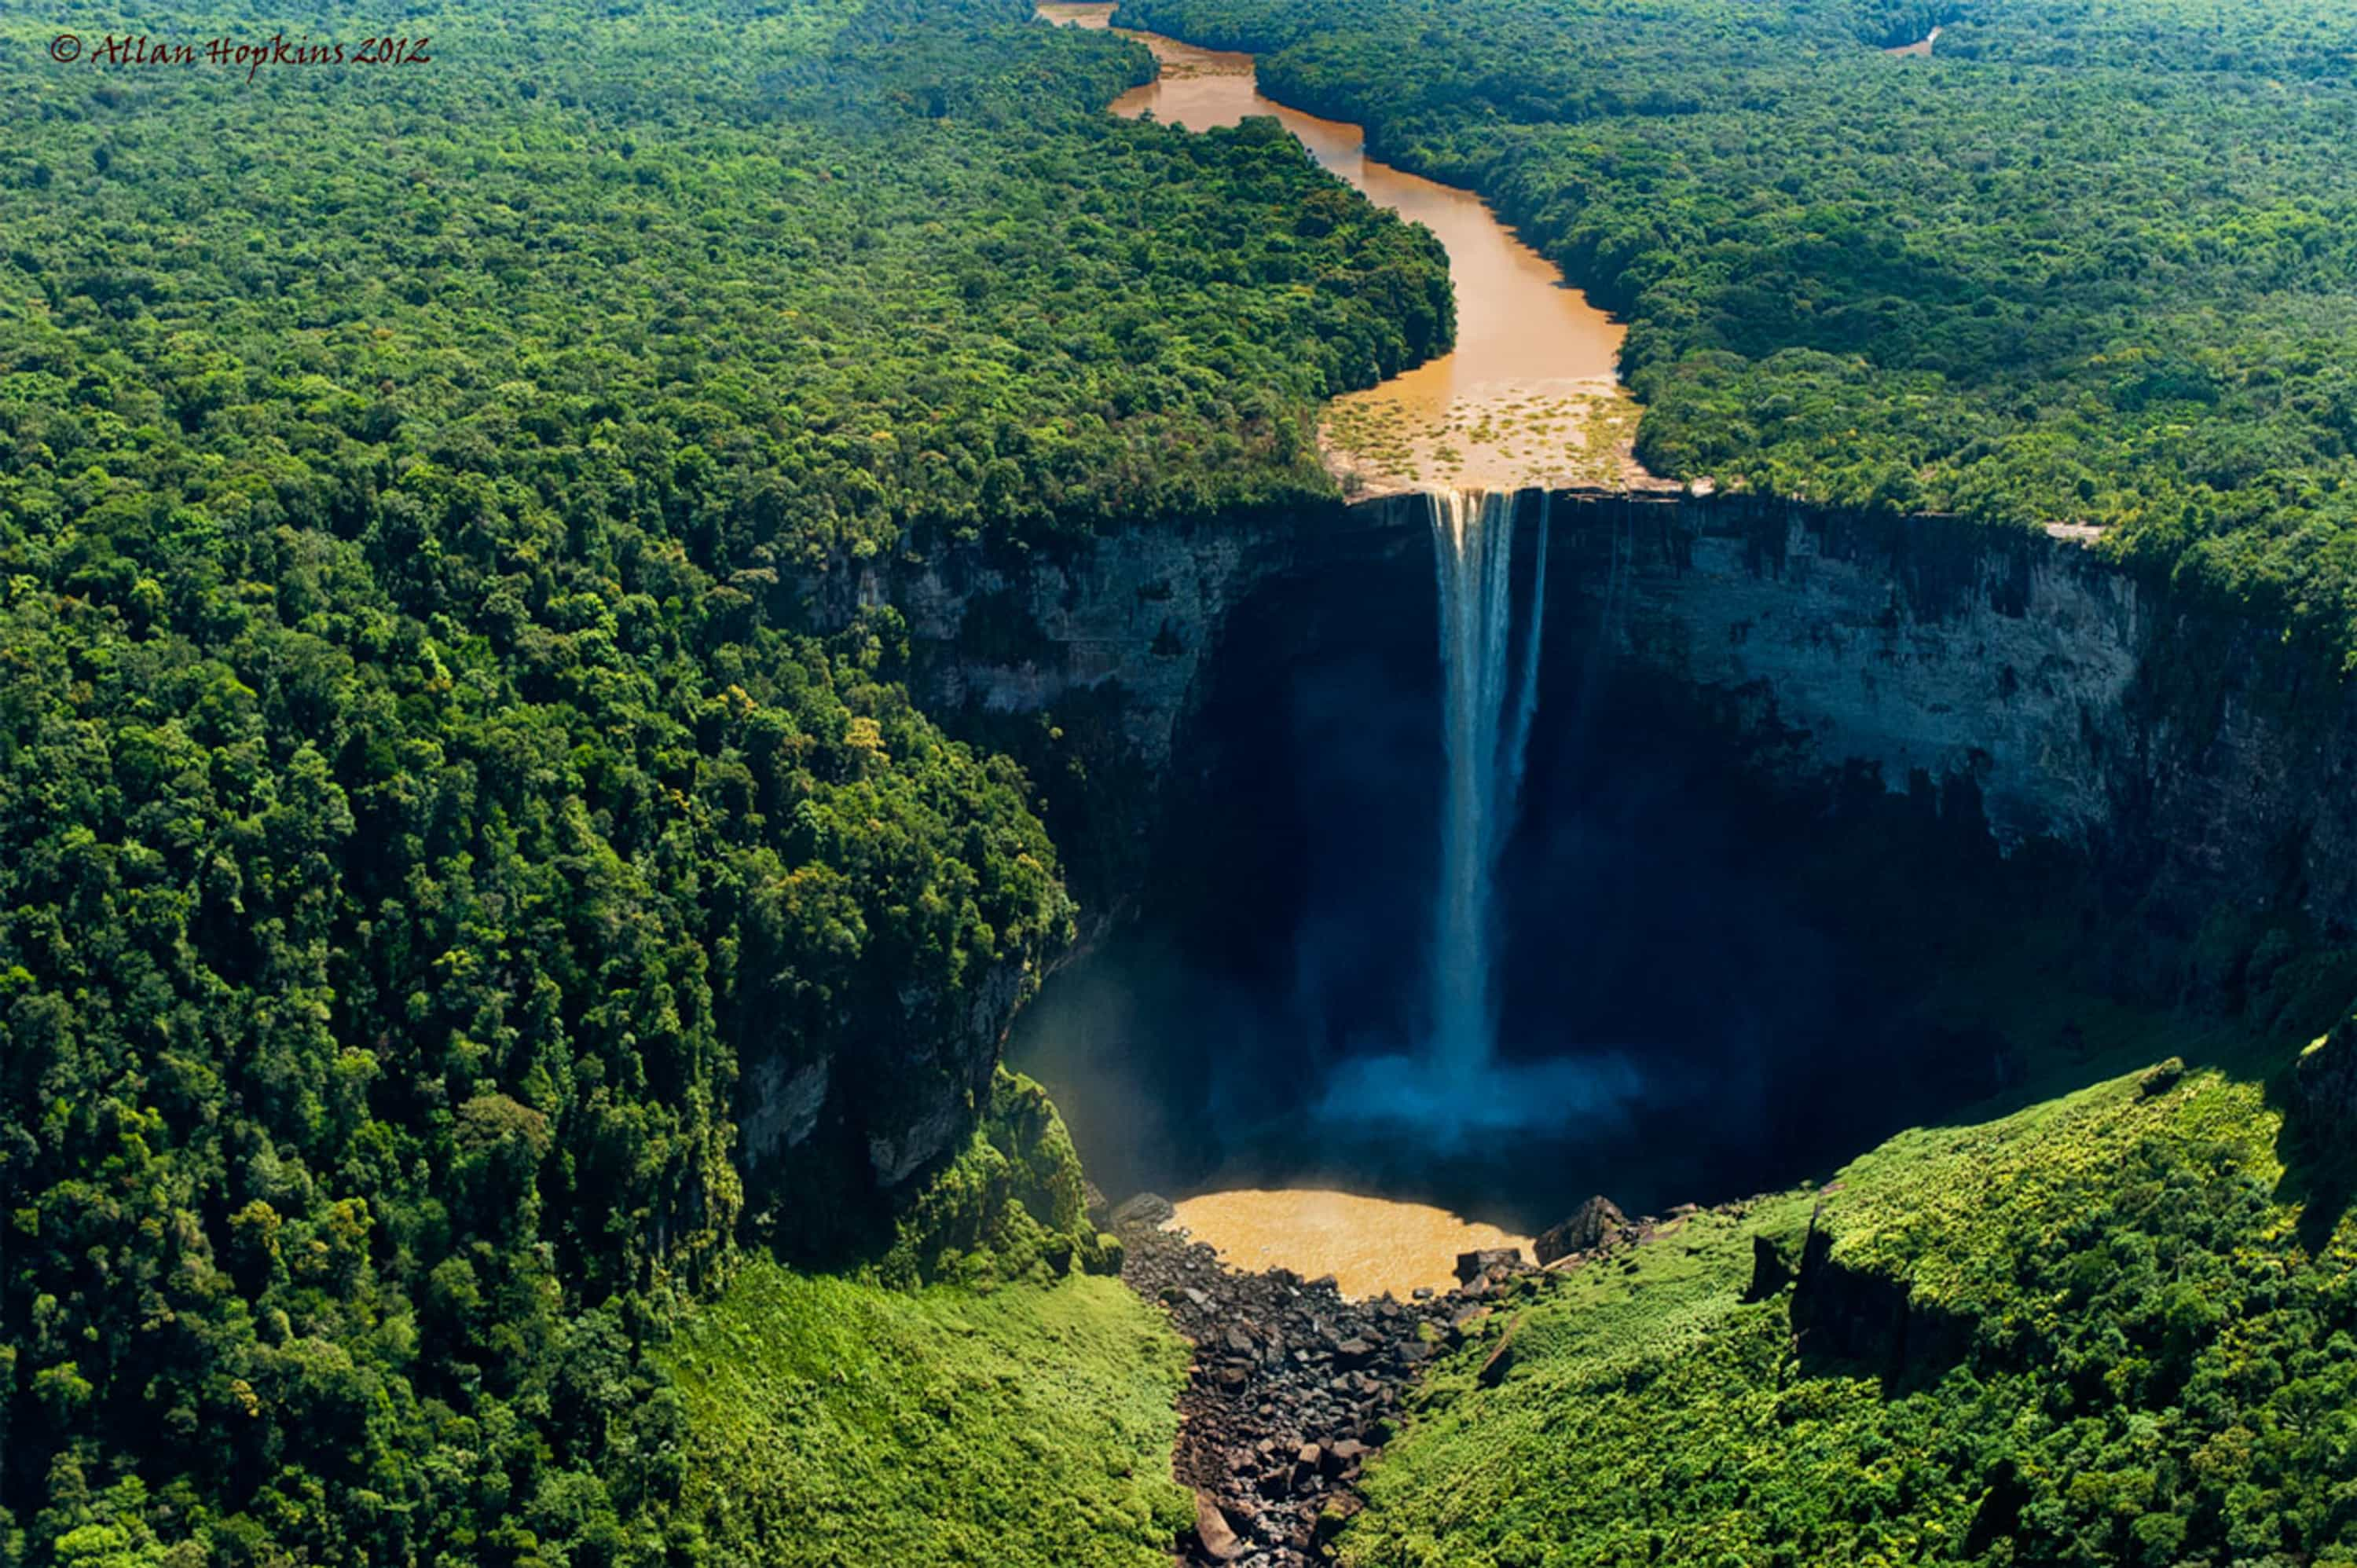 Kaieteur Falls, Guyana | Credit: Flickr user Allan Hopkins